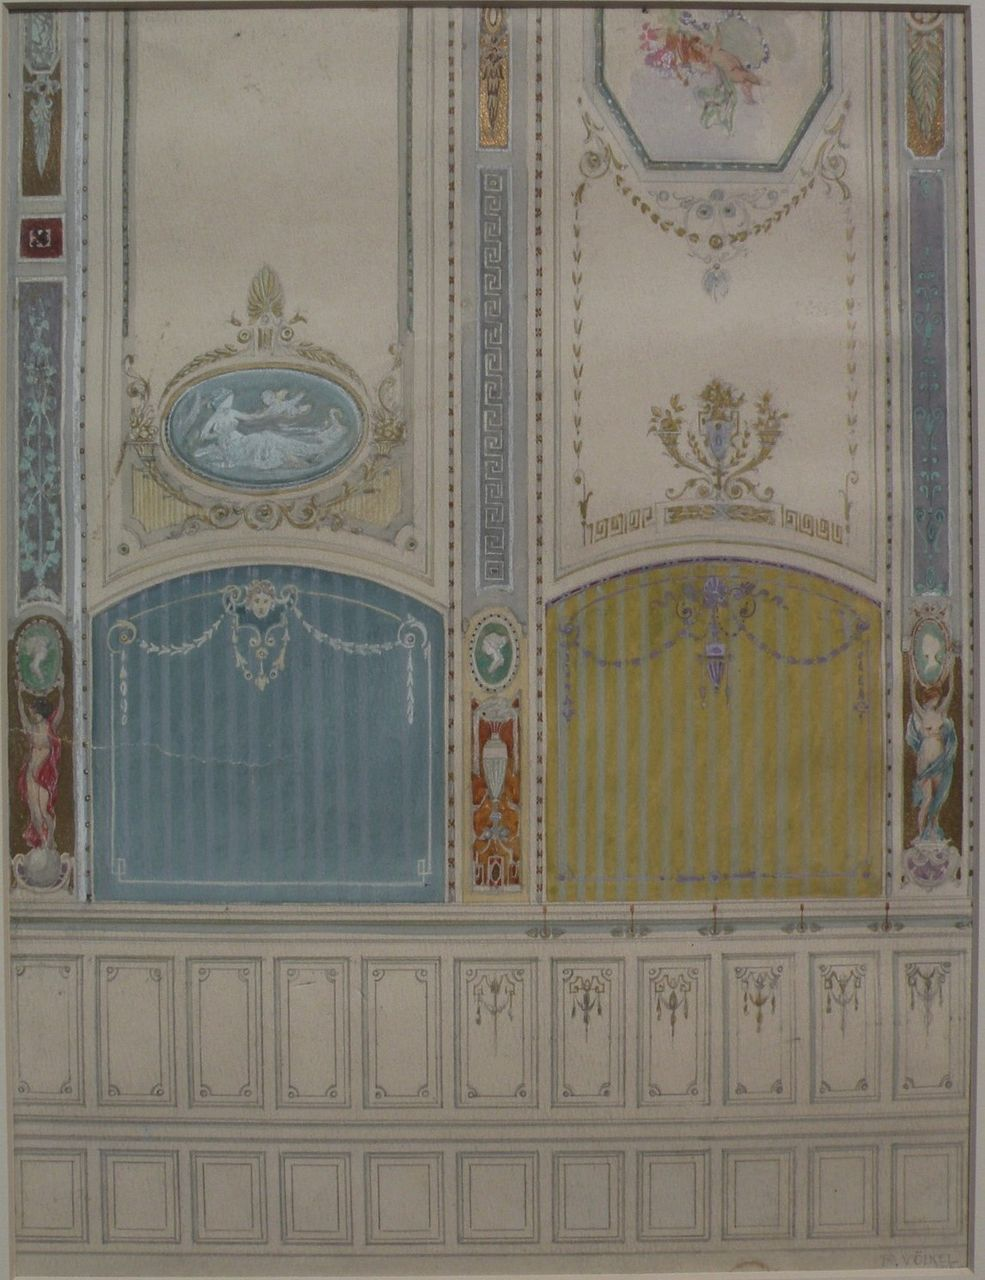 REINHOLD VOLKEL (1873-1938) fine original watercolor and gouache drawing of elegant parlor wall details